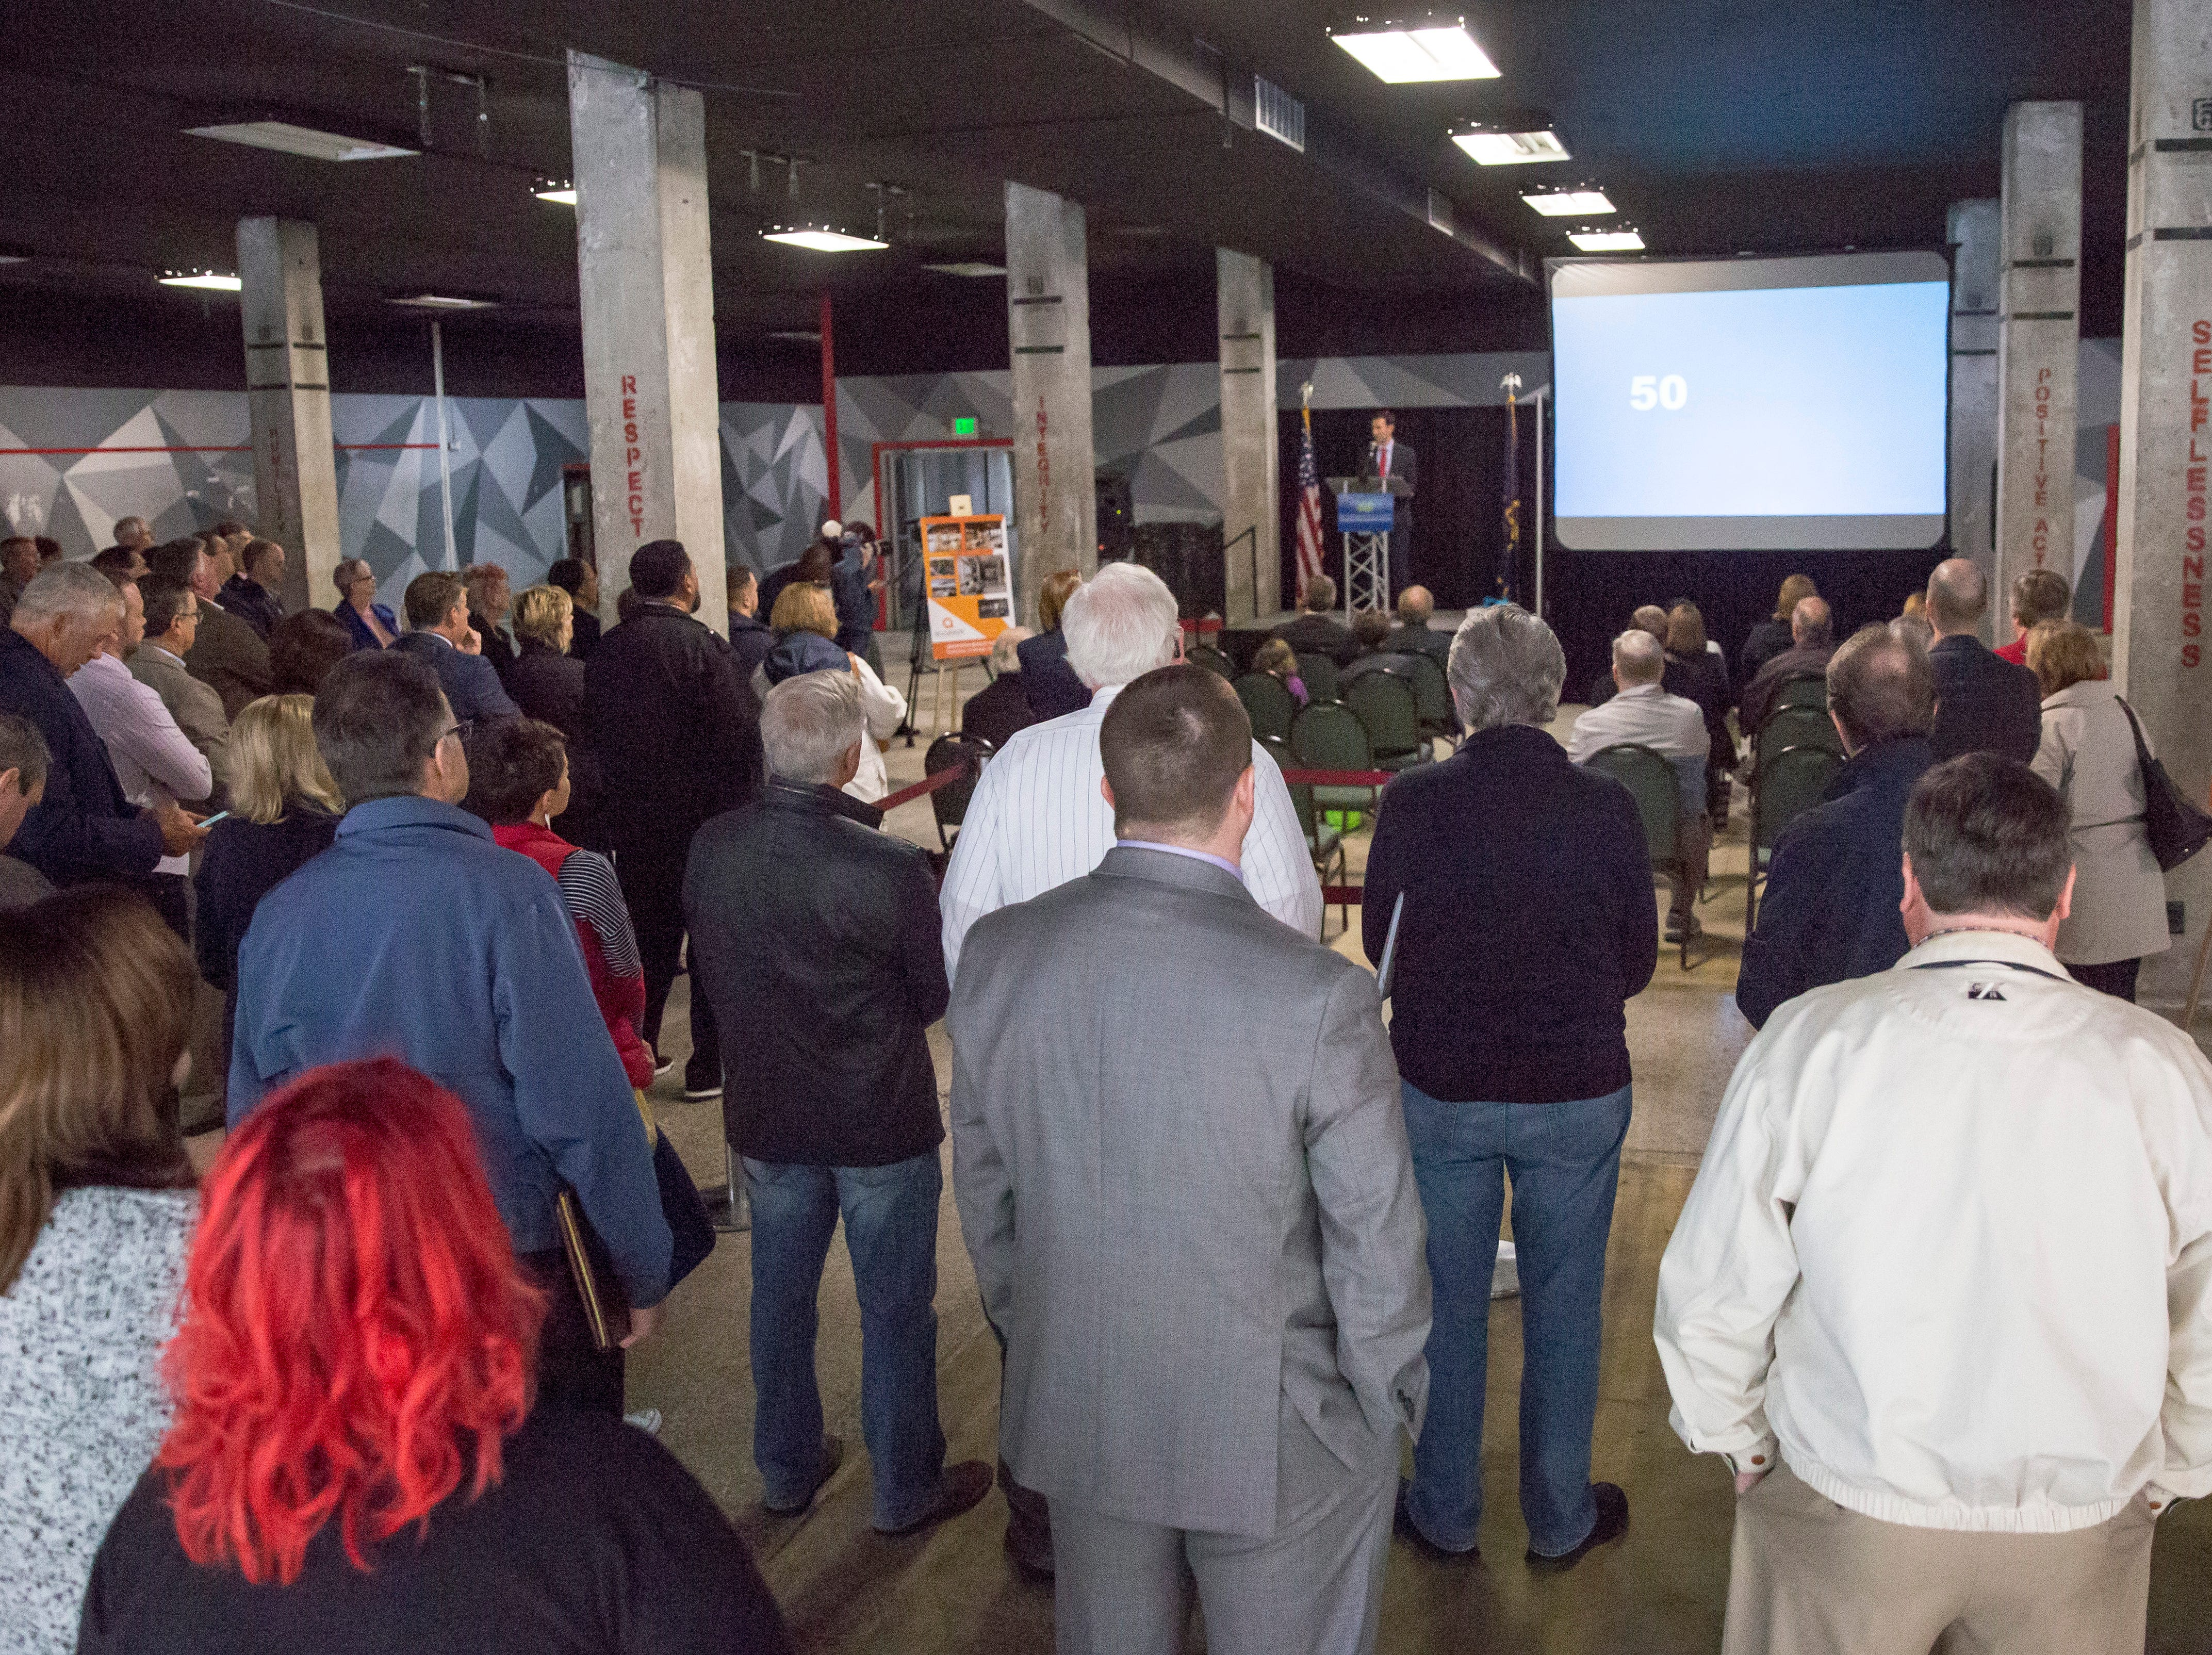 City officials and members of the community gather for the announcement that Accutech Systems would be moving their headquarters to downtown Muncie. The company, which will spend $5.5 million on the investment, hopes to be in their office by the end of the year.